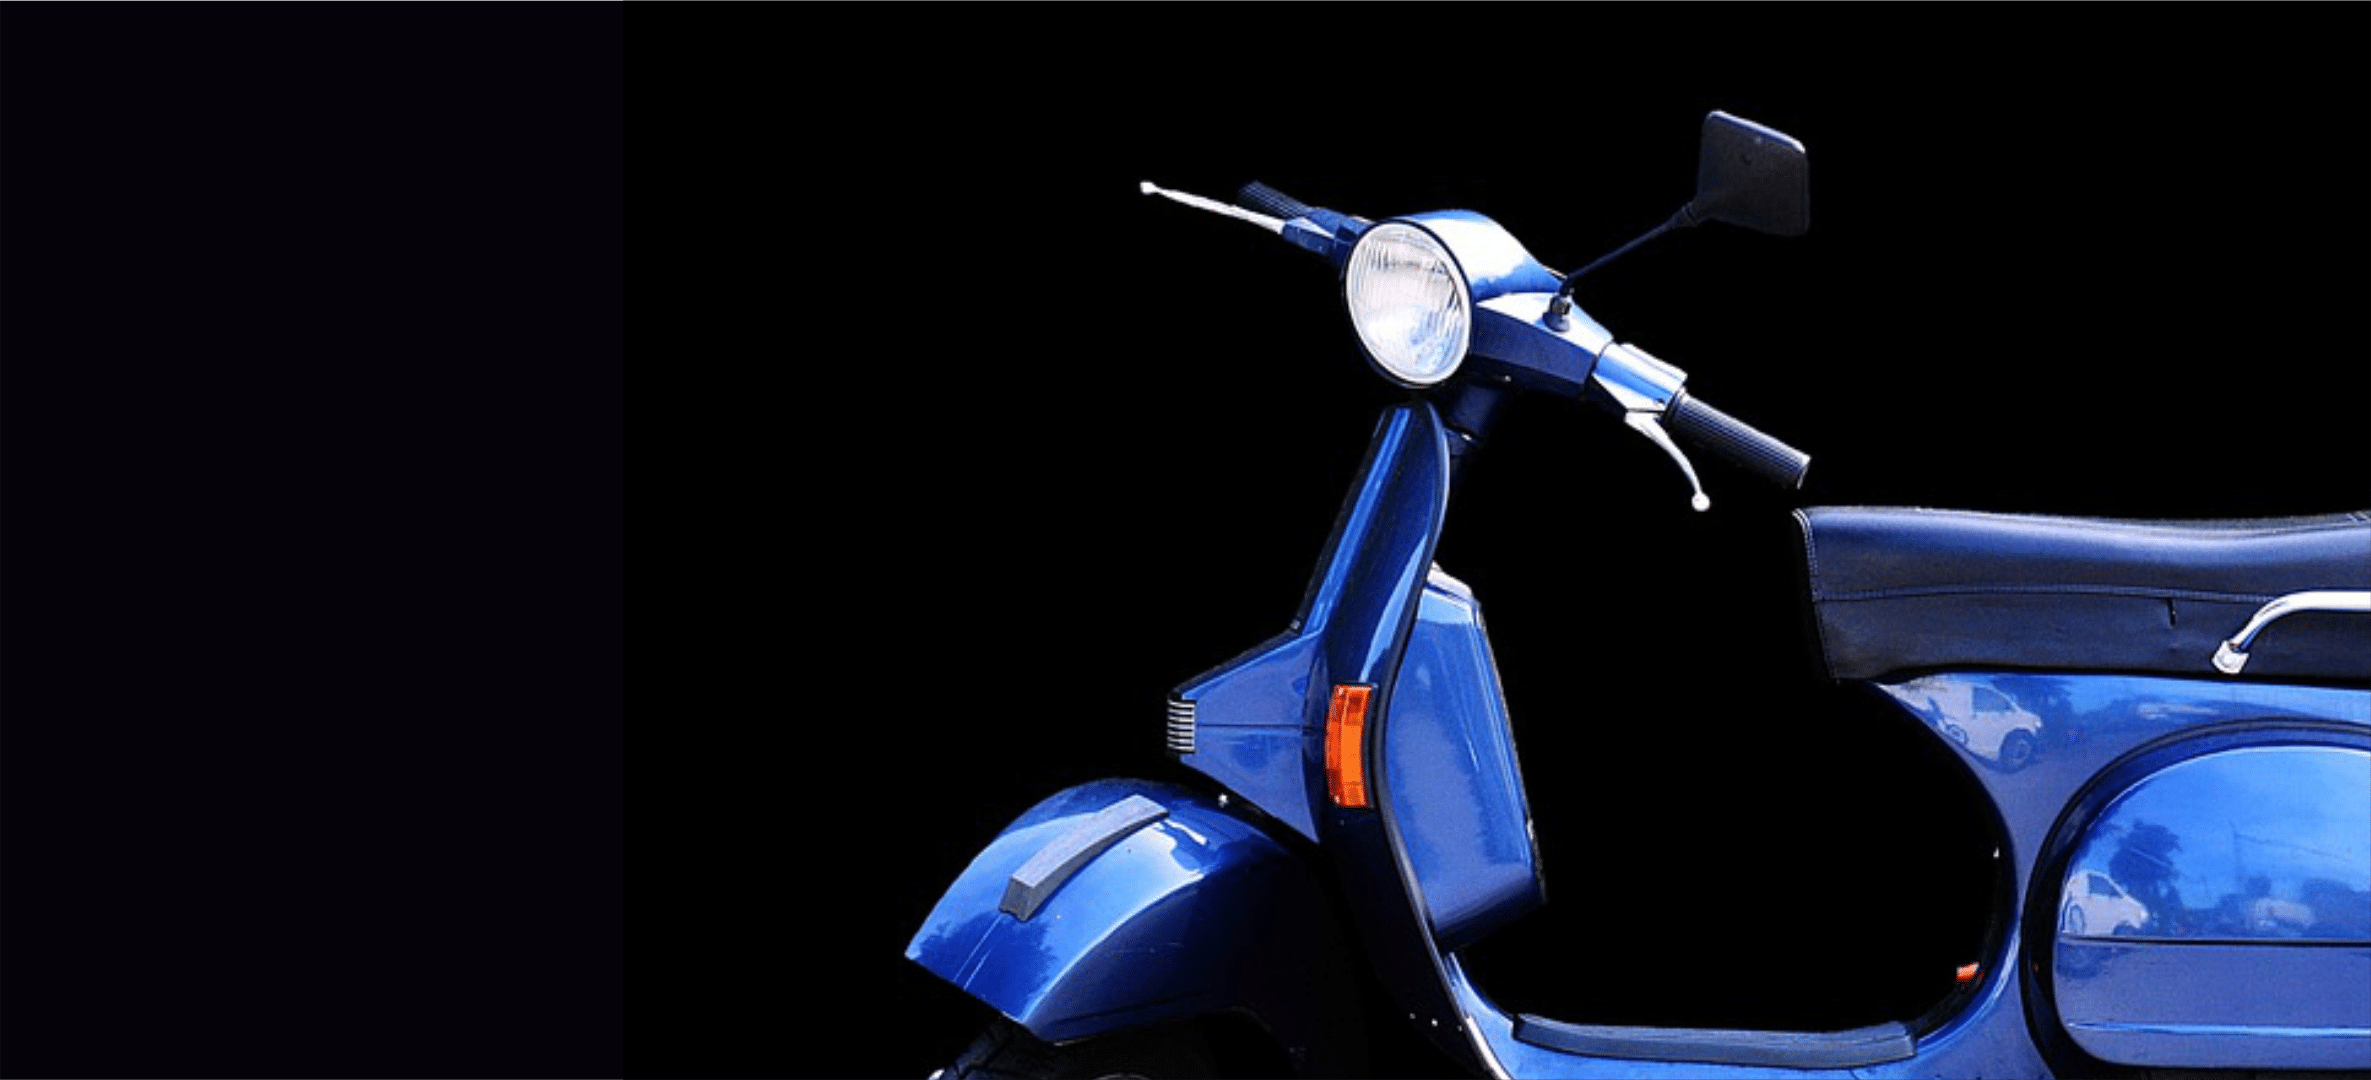 Used Vespa Parts For Sale